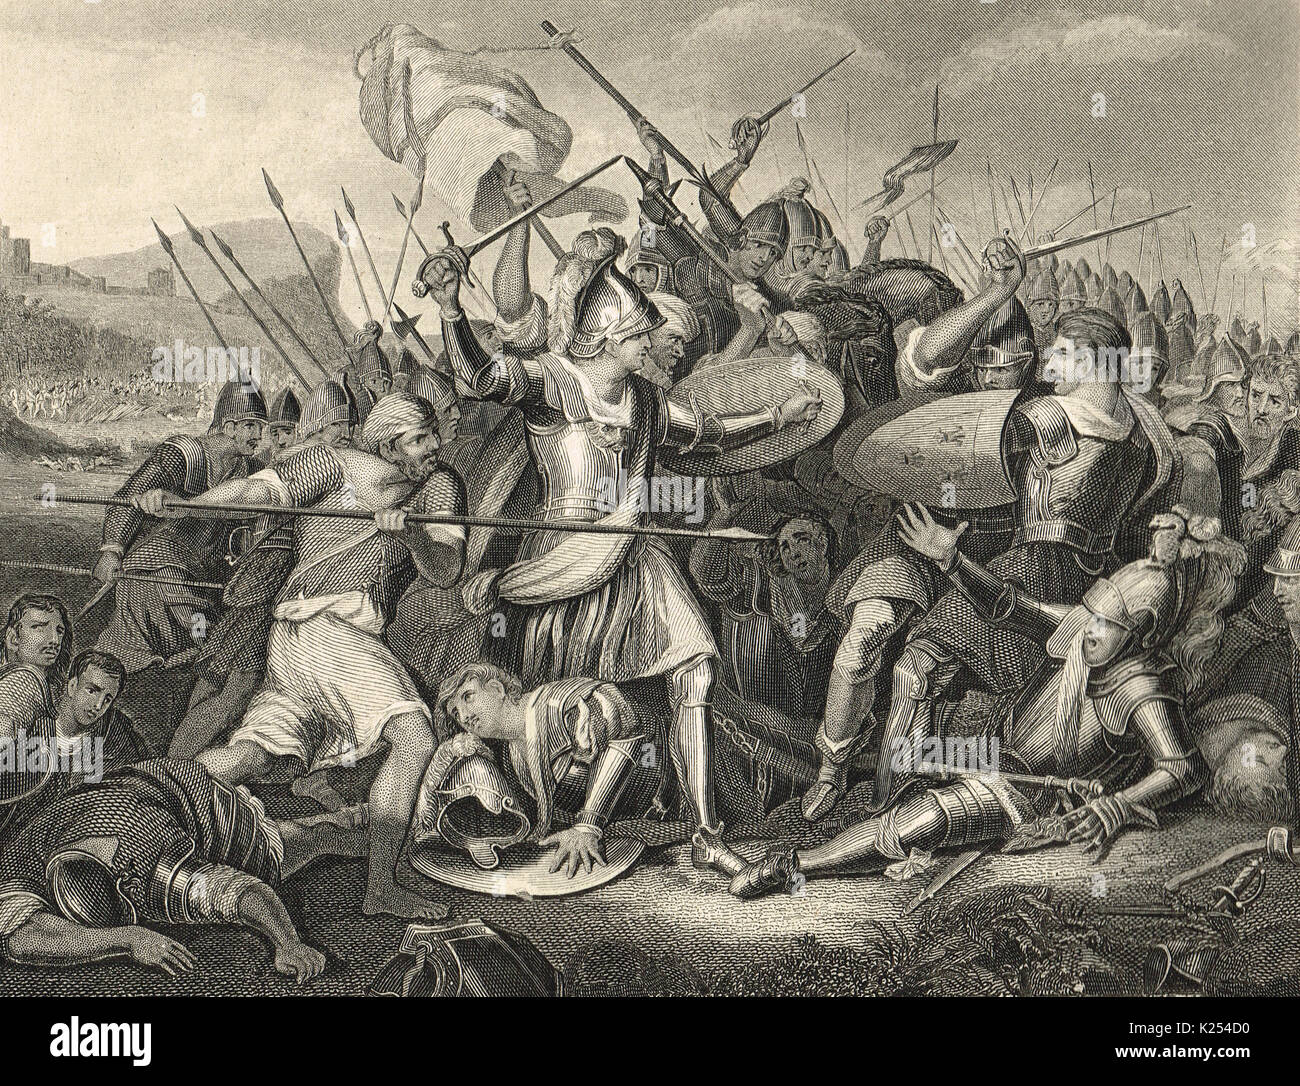 Battle of Agincourt, Saint Crispin's Day, 25 October 1415 - Stock Image